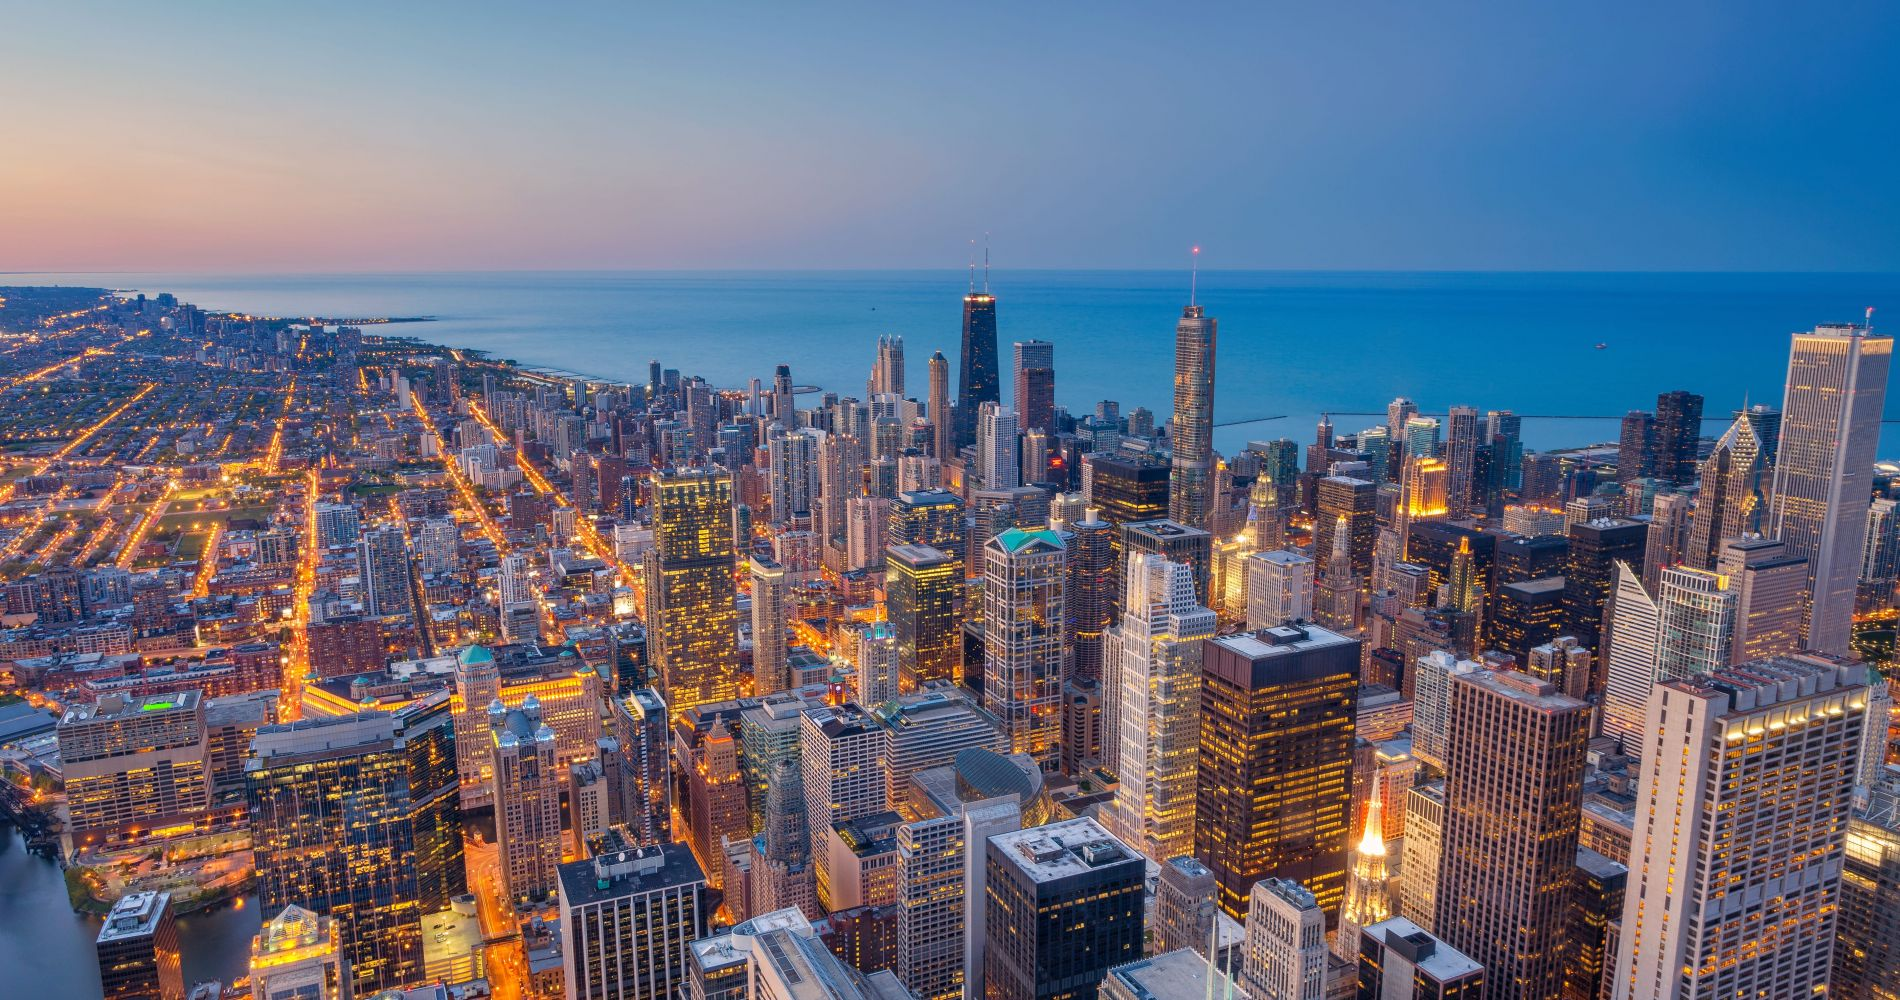 SkyDeck Chicago and other attractions of Chicago